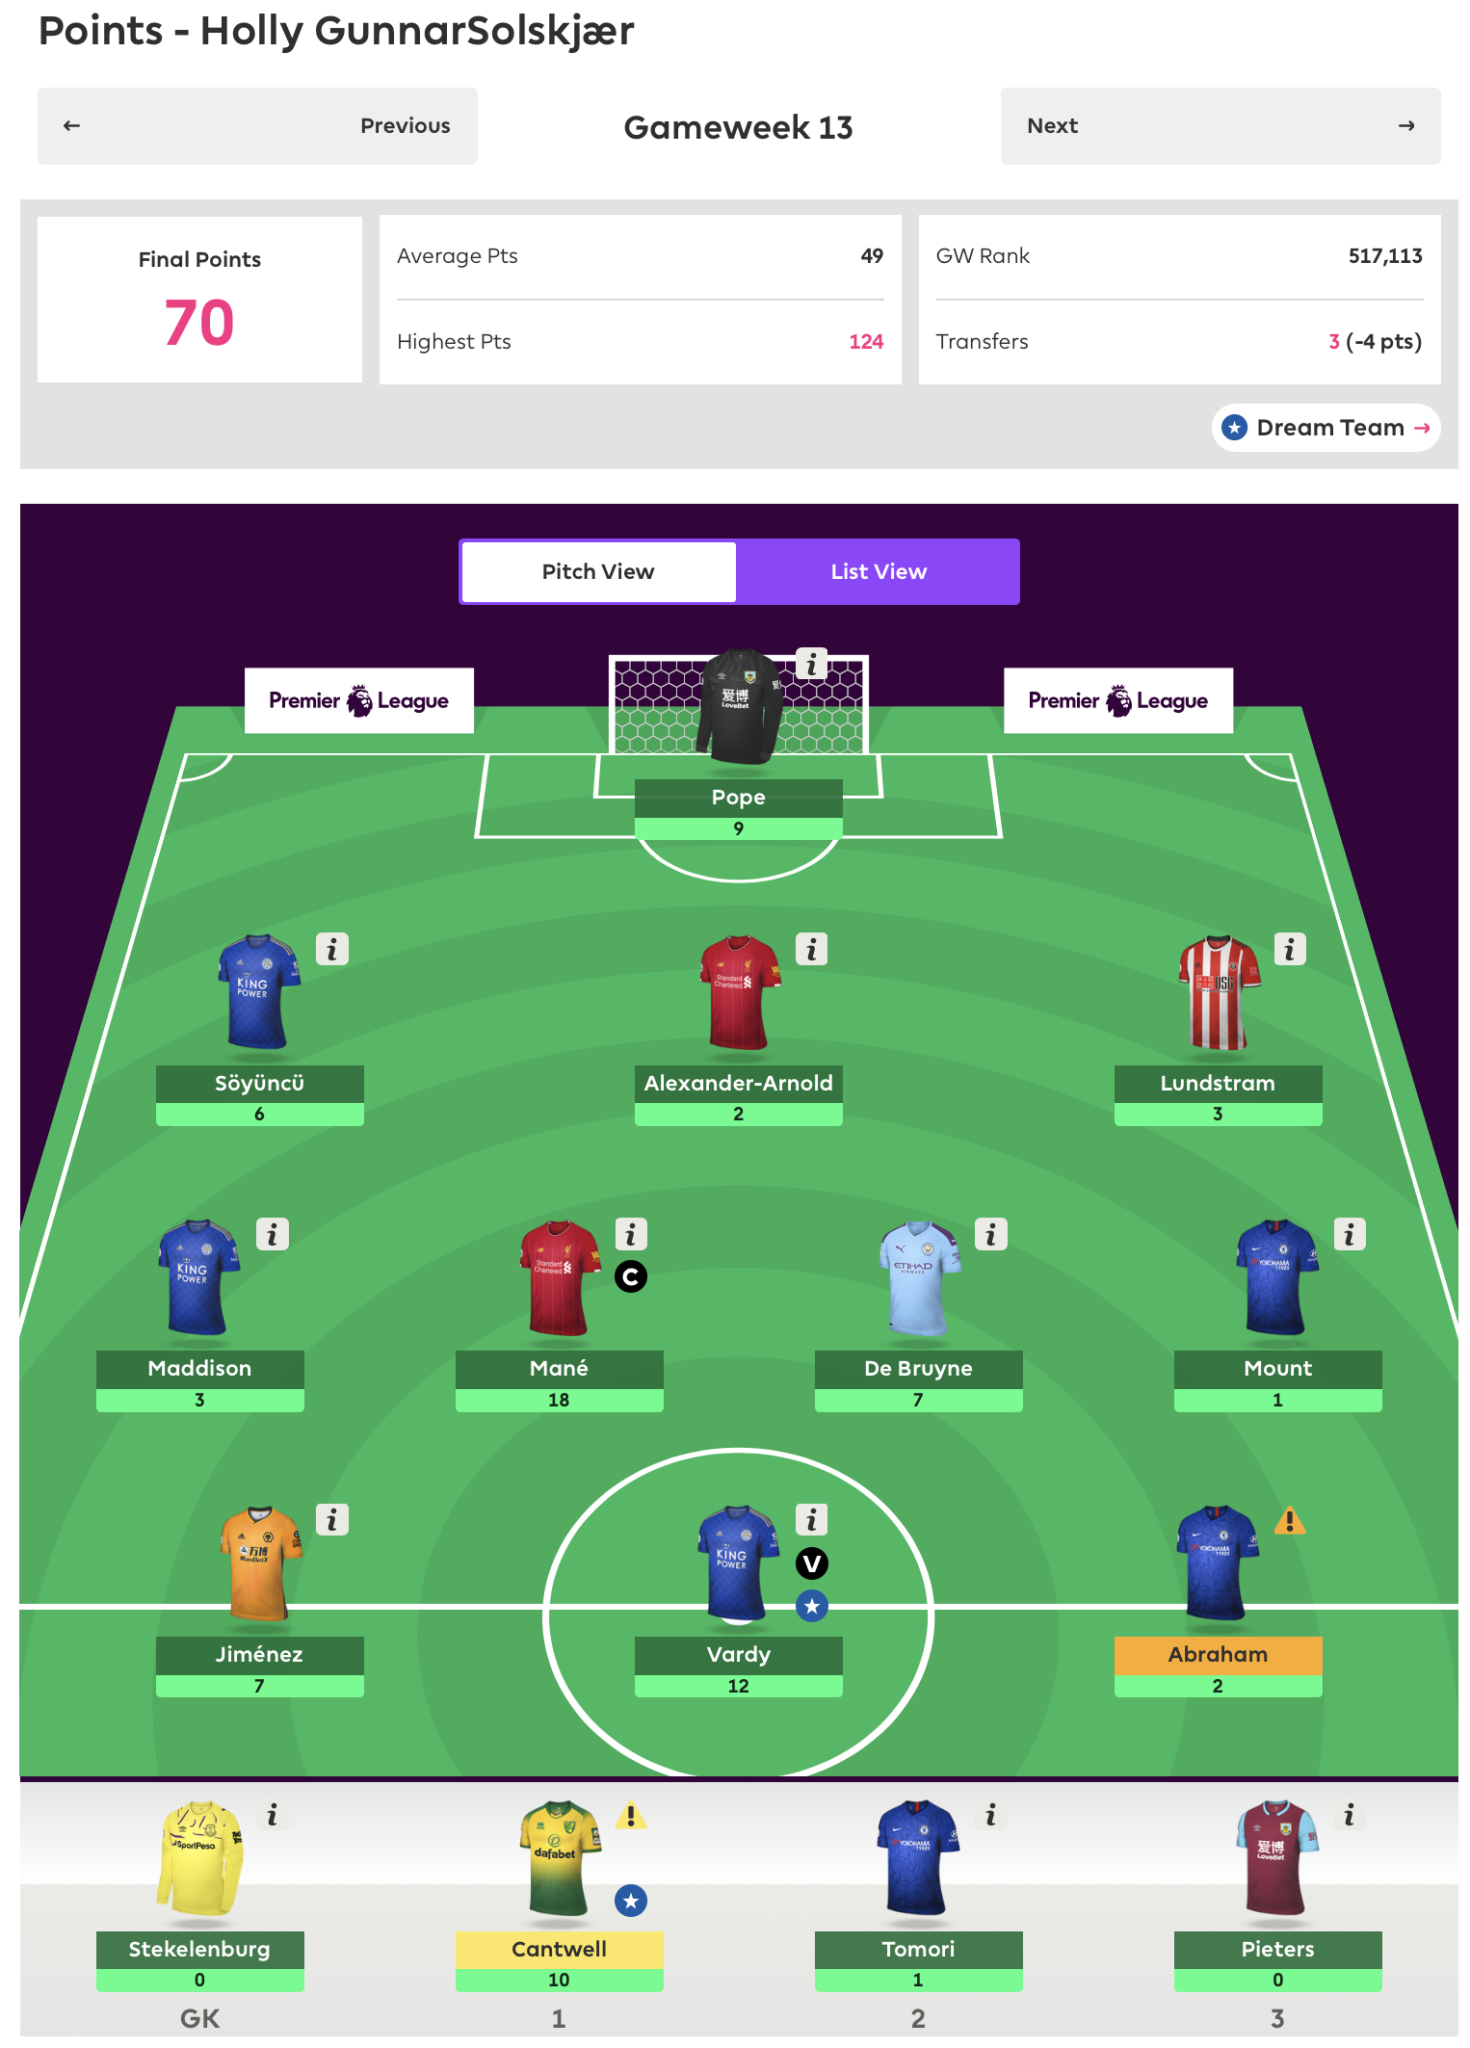 Gameweek 13 Review